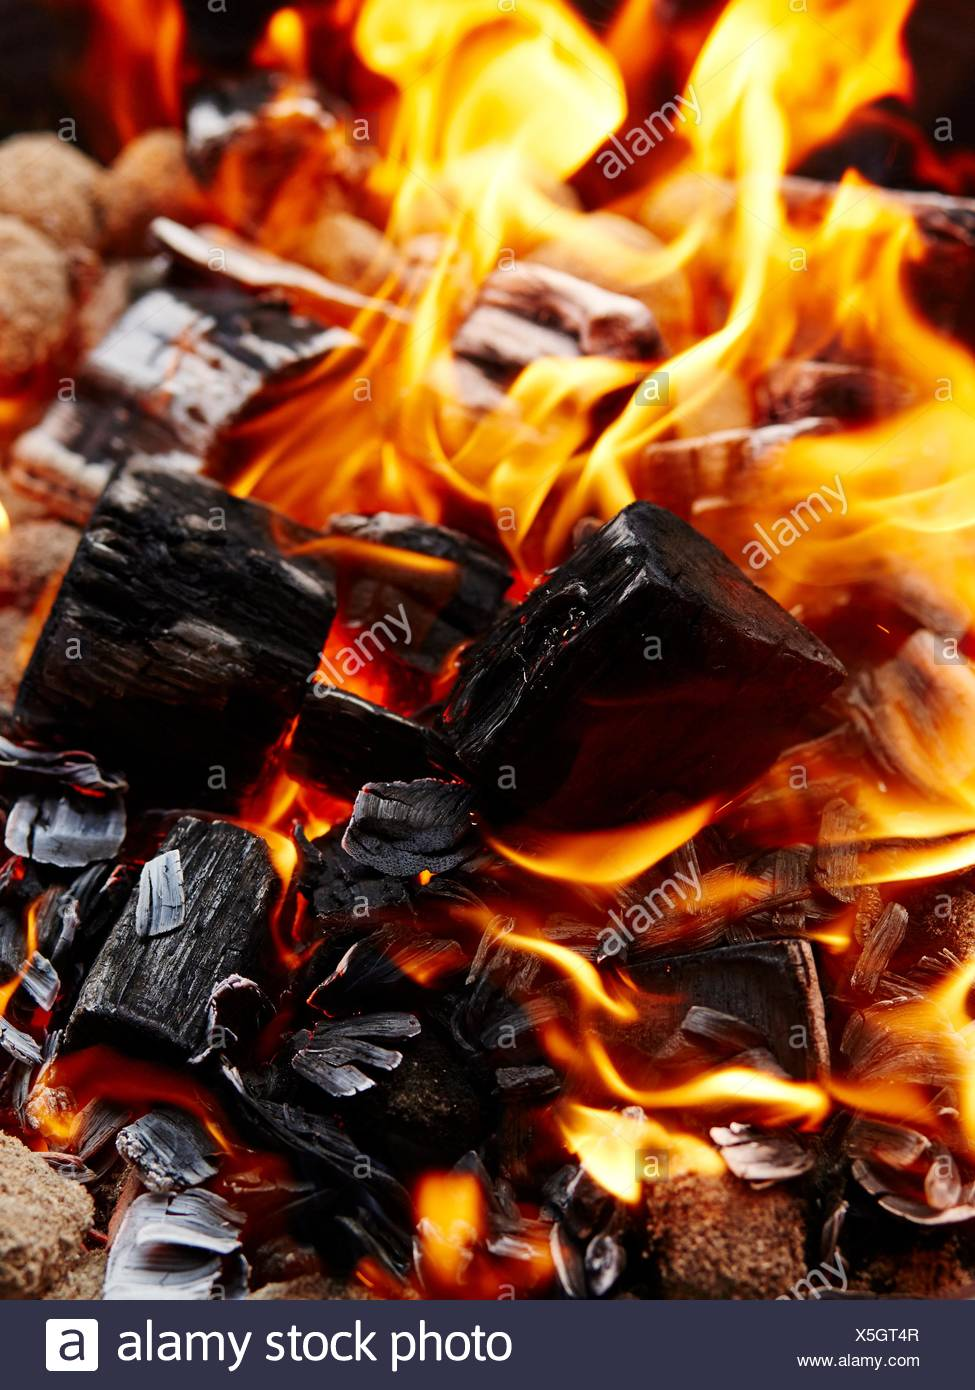 Fire, burning charcoal - Stock Image